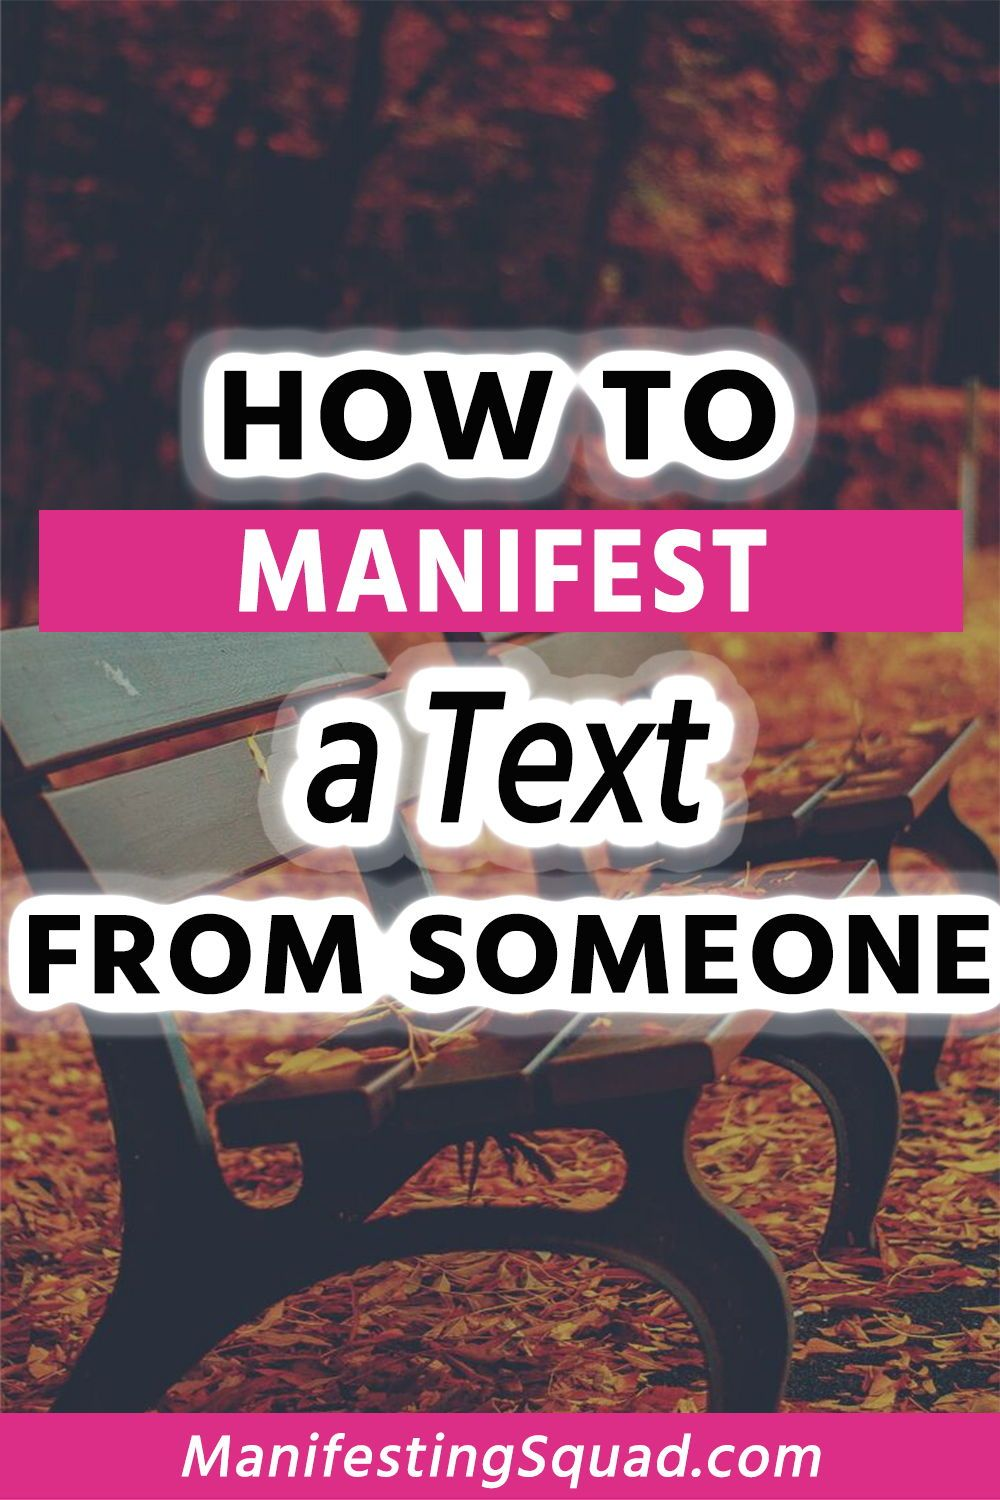 How to manifest someone to text you. How to manifest a